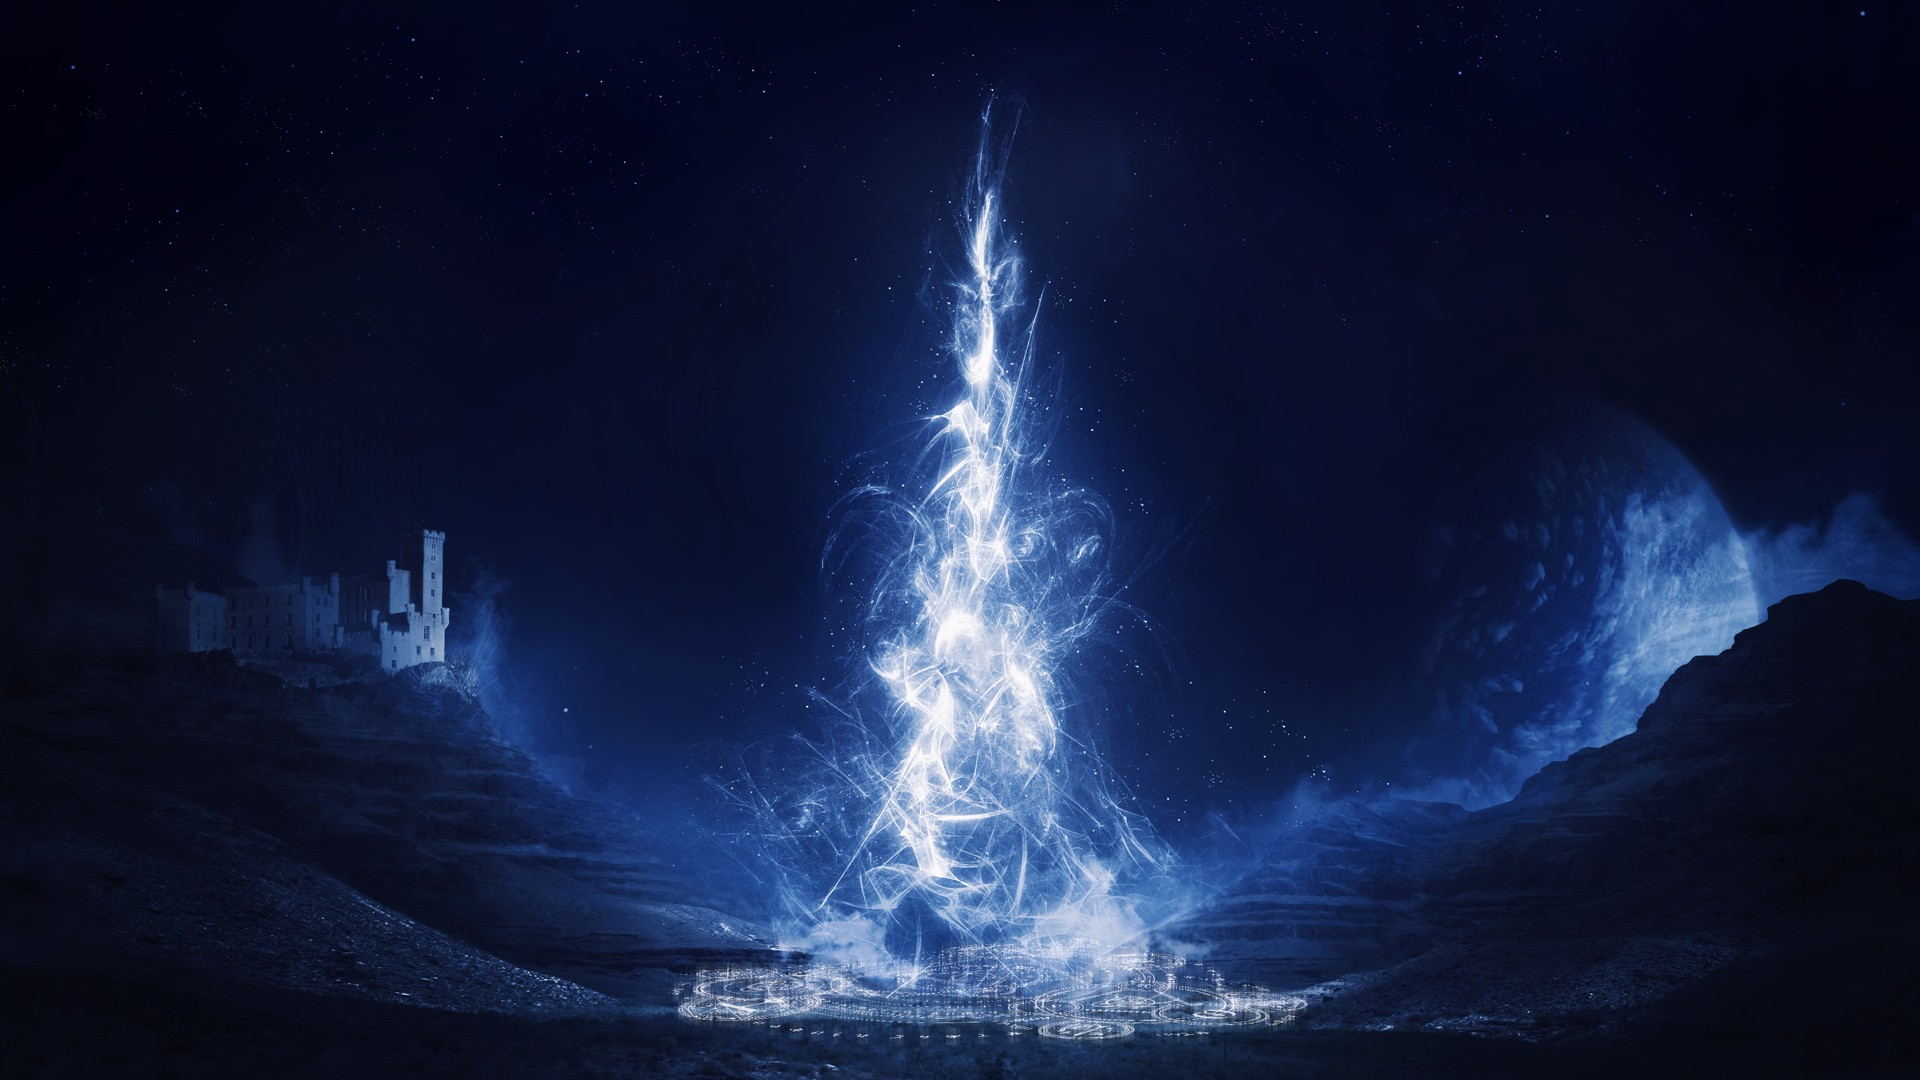 Group of magical blue wallpaper magical wallpaper the wallpaper voltagebd Image collections